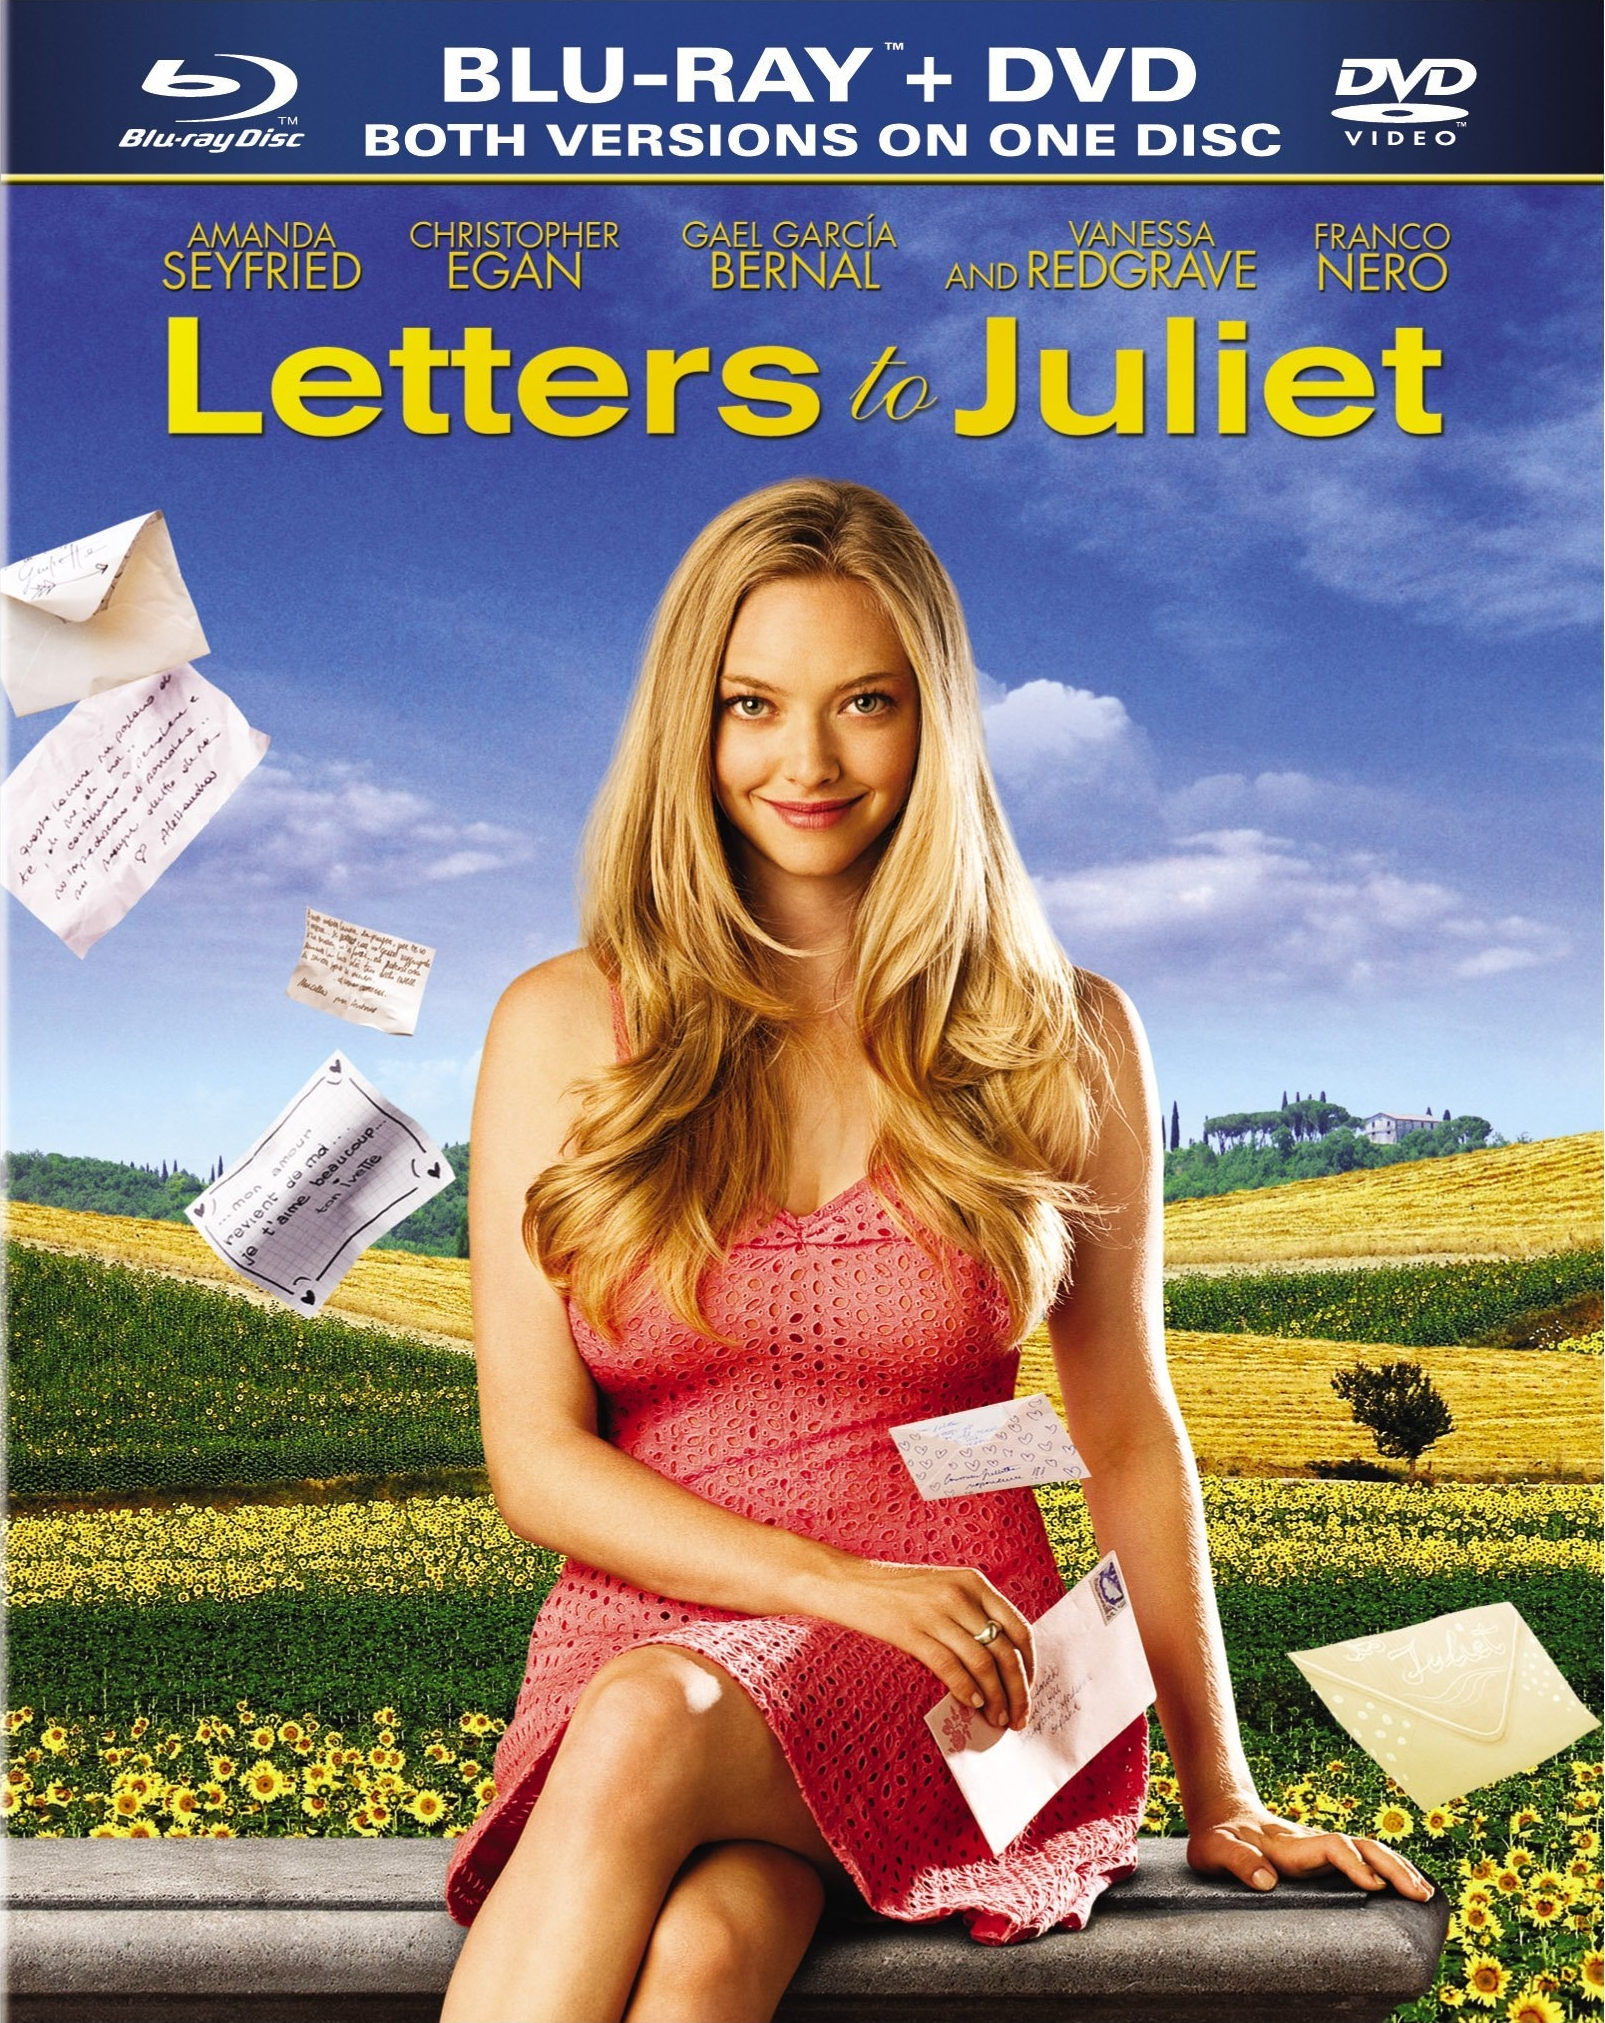 letters to juliet full movie letters to juliet 2010 bluray 720p dts x264 chd high 12824 | 13386 front